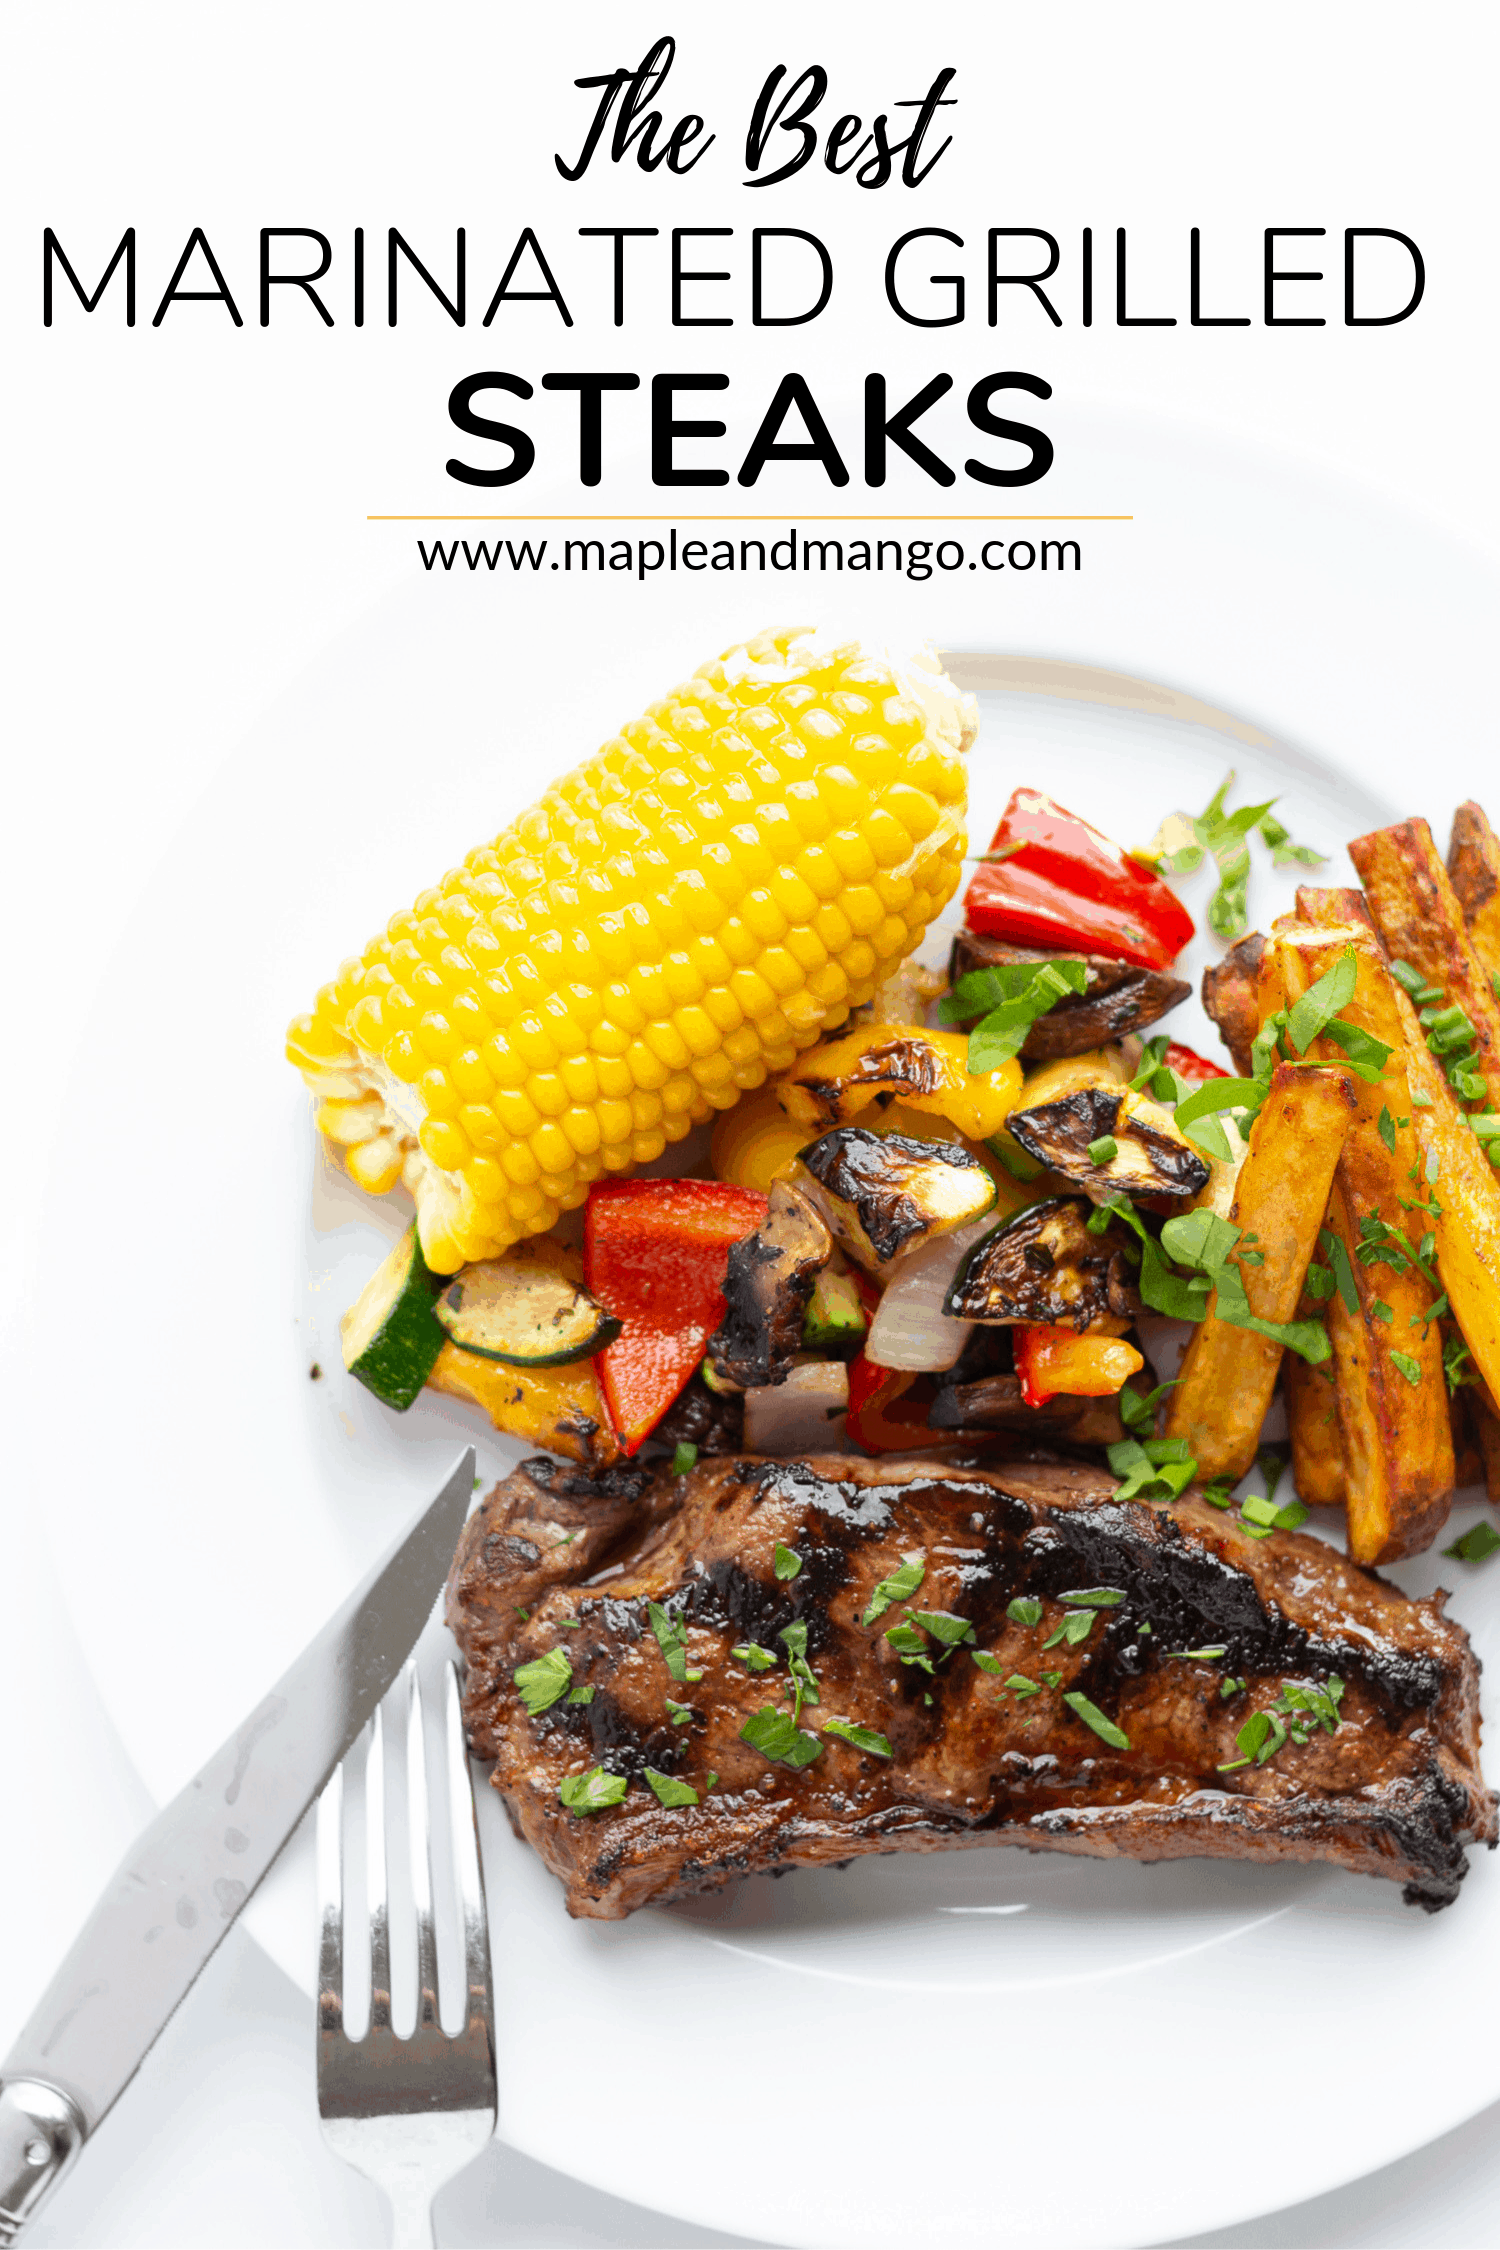 "Pinterest graphic containing a grilled steak dinner on a white plate with the title ""The Best Marinated Grilled Steaks"" above."